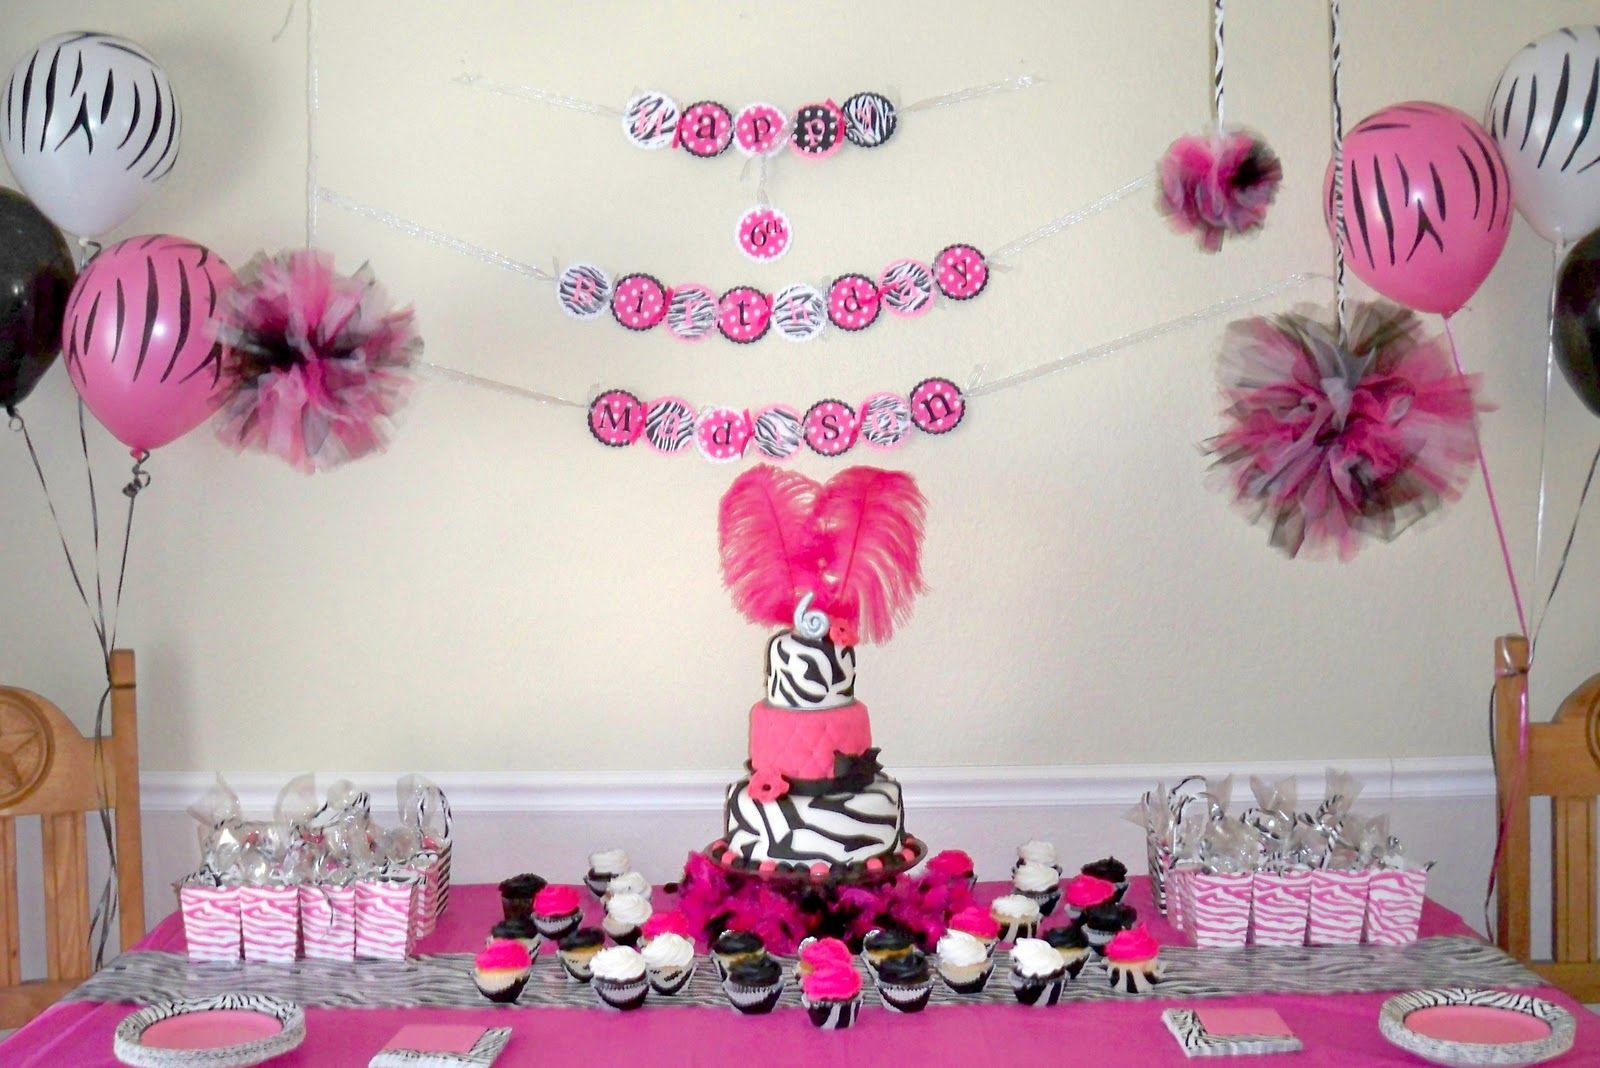 Hot Pink Zebra Diva Birthday Party Ideas Make The Bannermake Tulle Pomsballoons Already In Amazon Shopping Cartgetting Excited